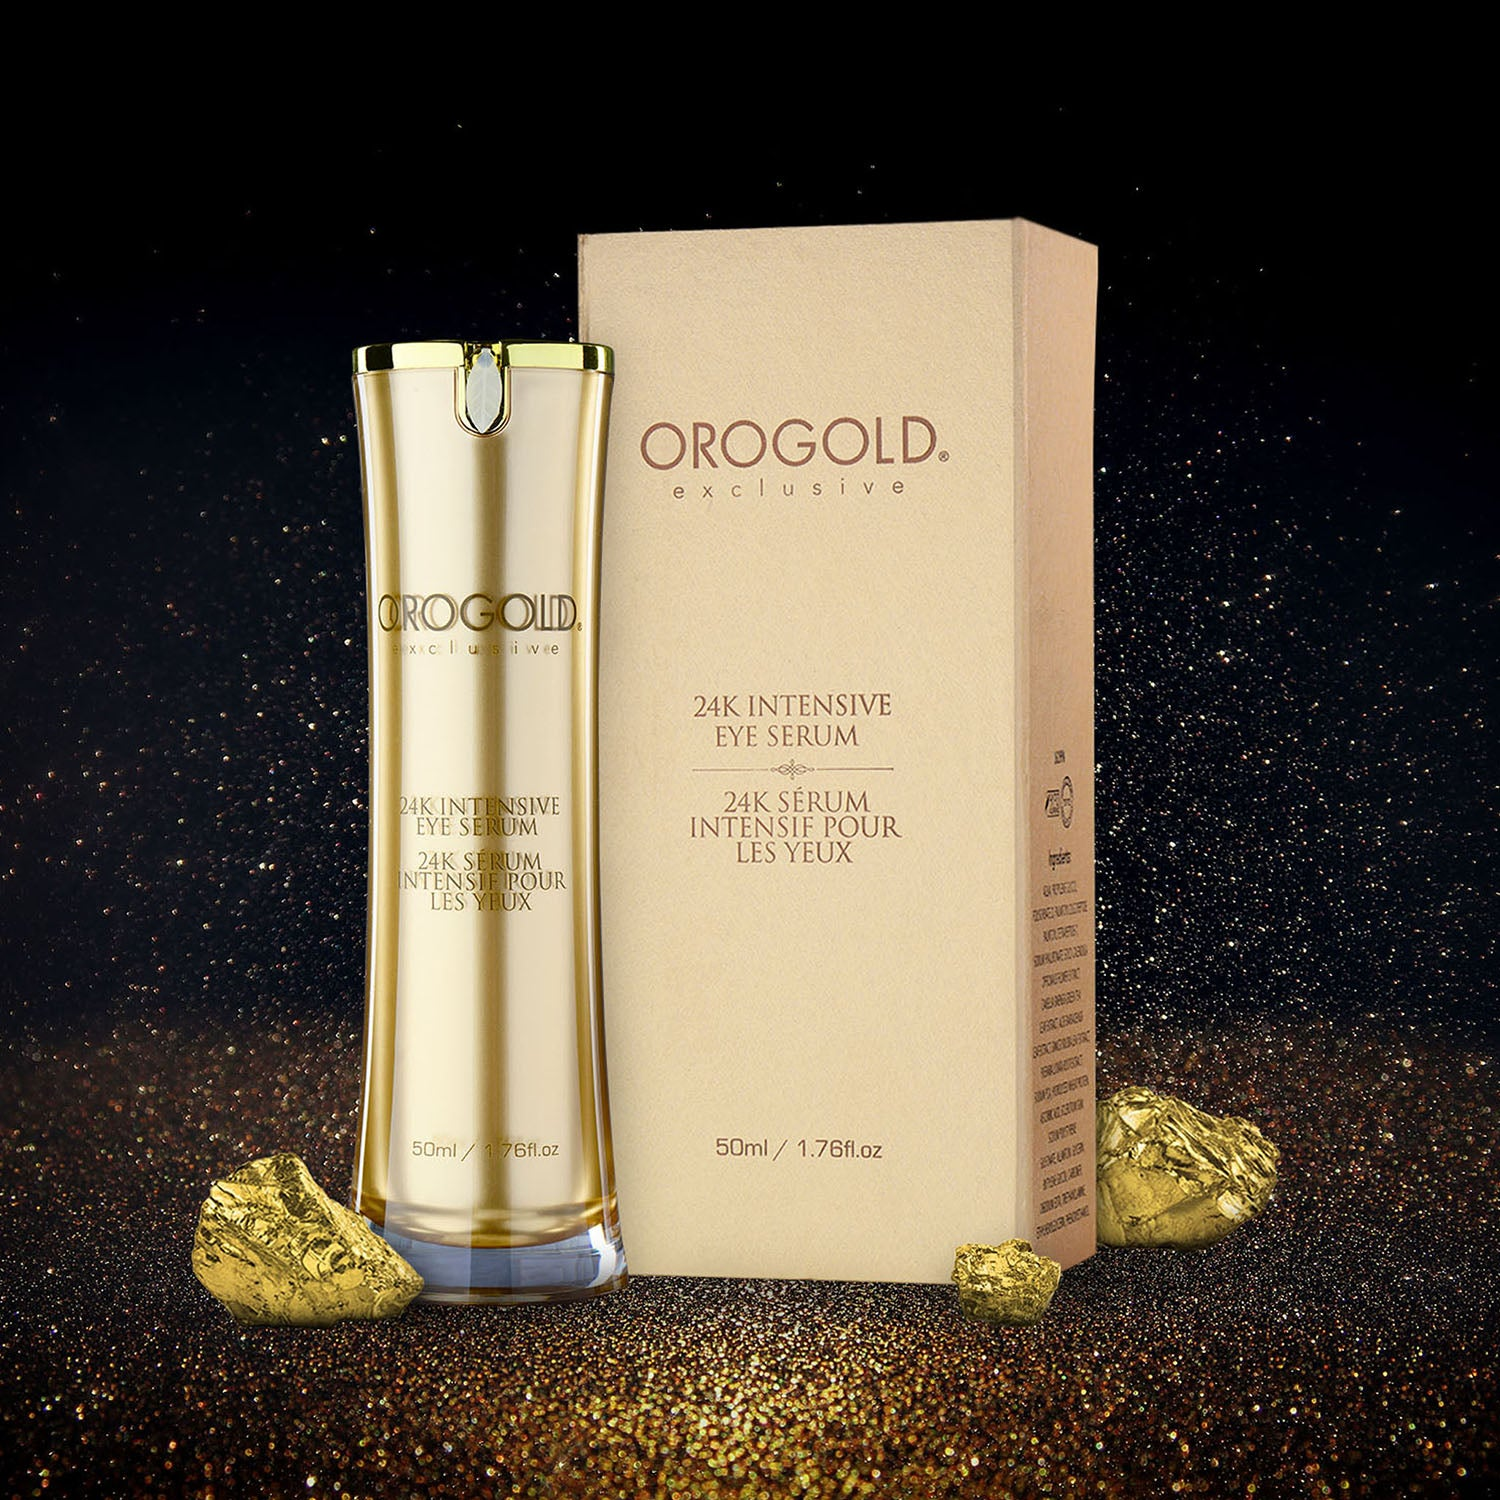 orogold eye serum for wrinkles